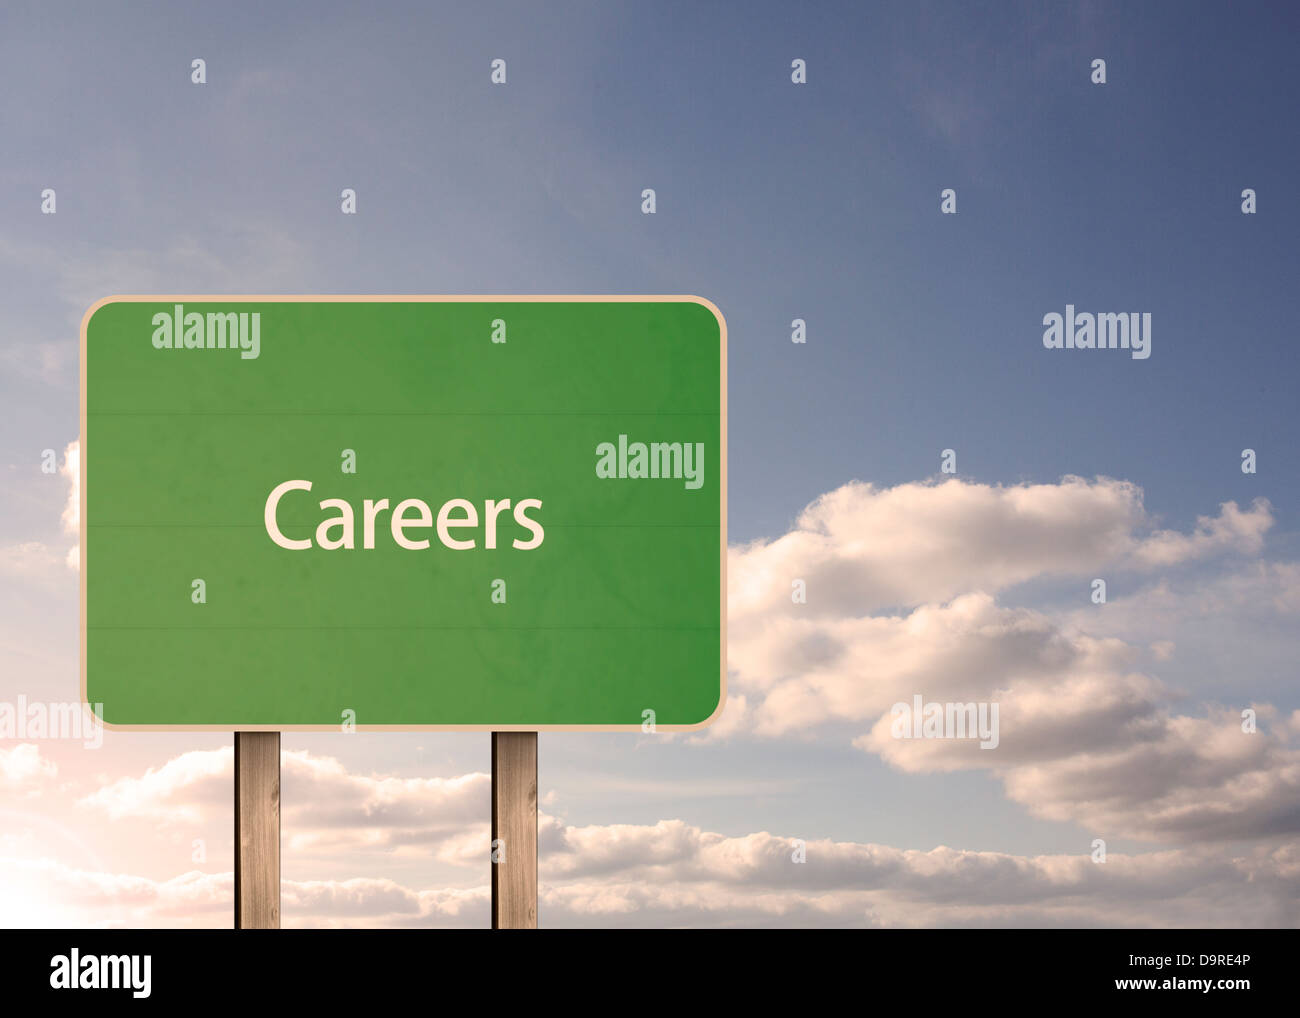 Careers road sign - Stock Image